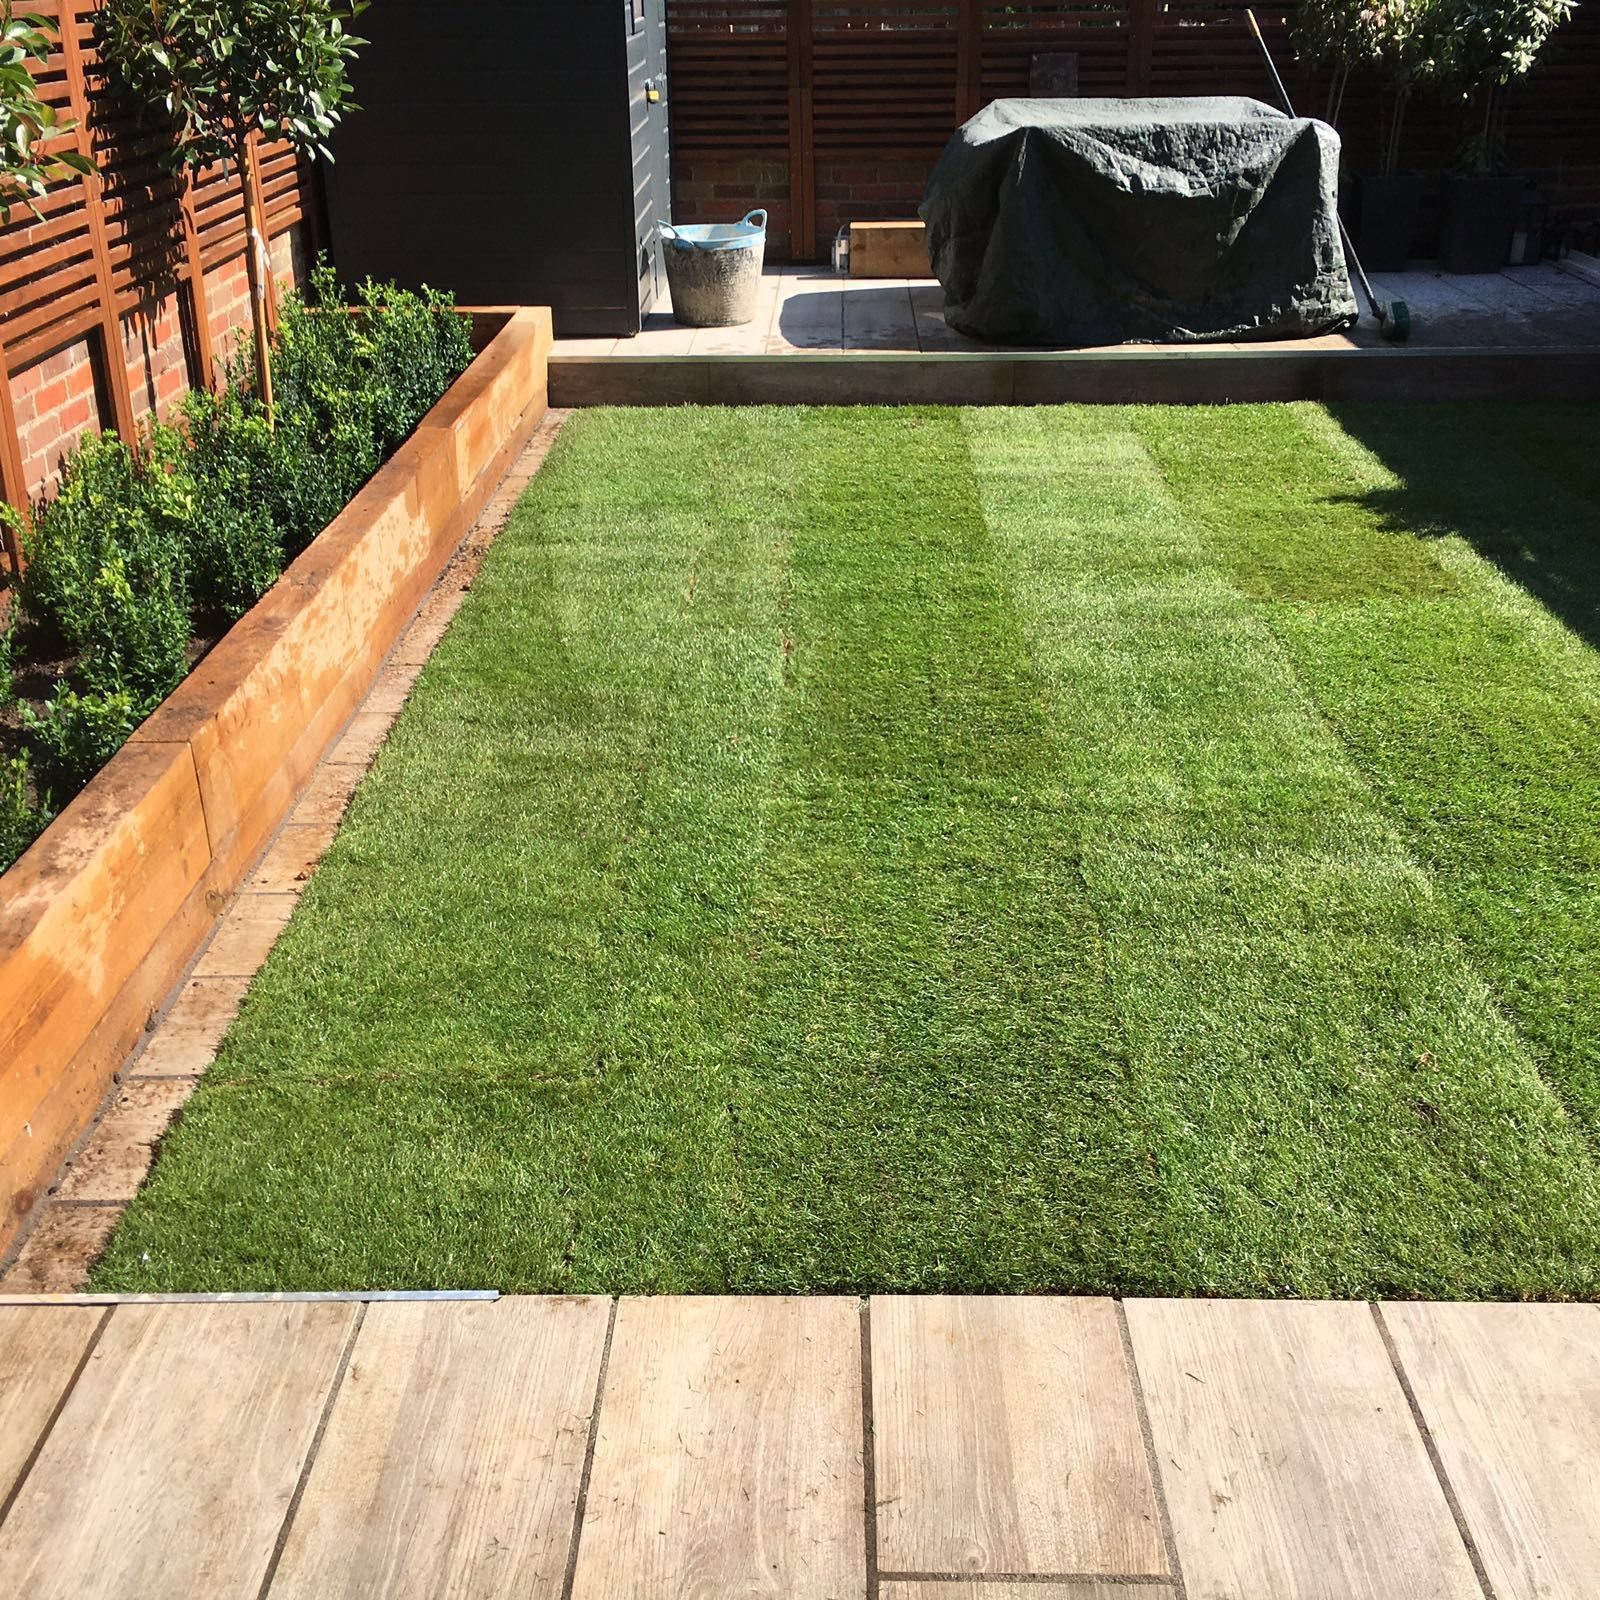 Landscaping Rolawn Medallion Turf laid in this garden New Lawn